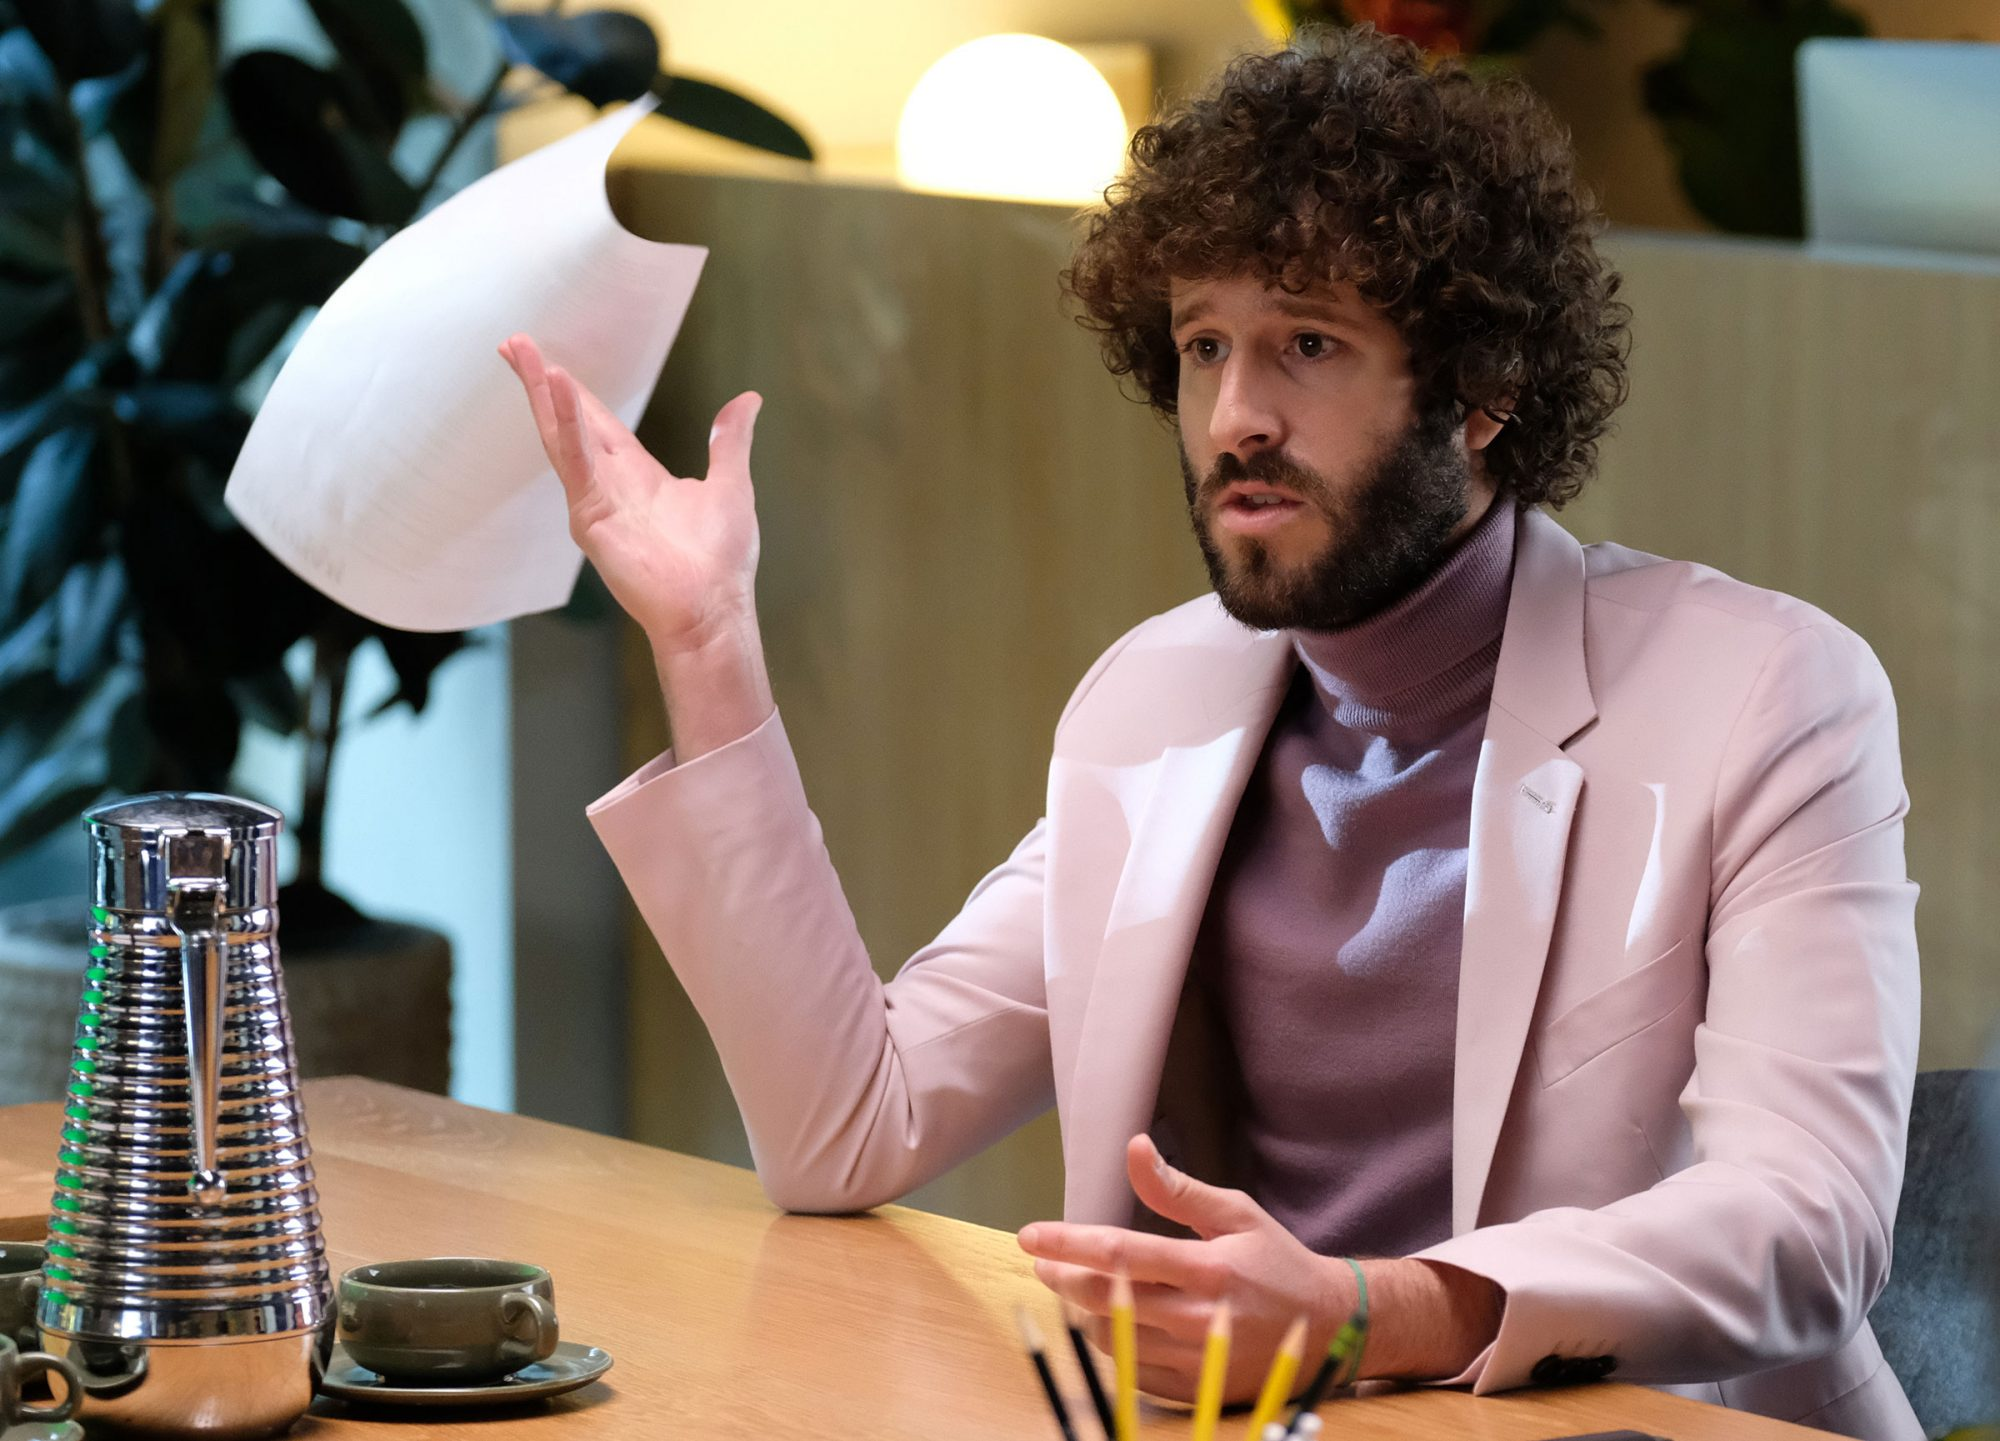 Lil Dicky's 'Dave' to Feature Lil Yachty, Lil Nas X, Rae Sremmurd & More